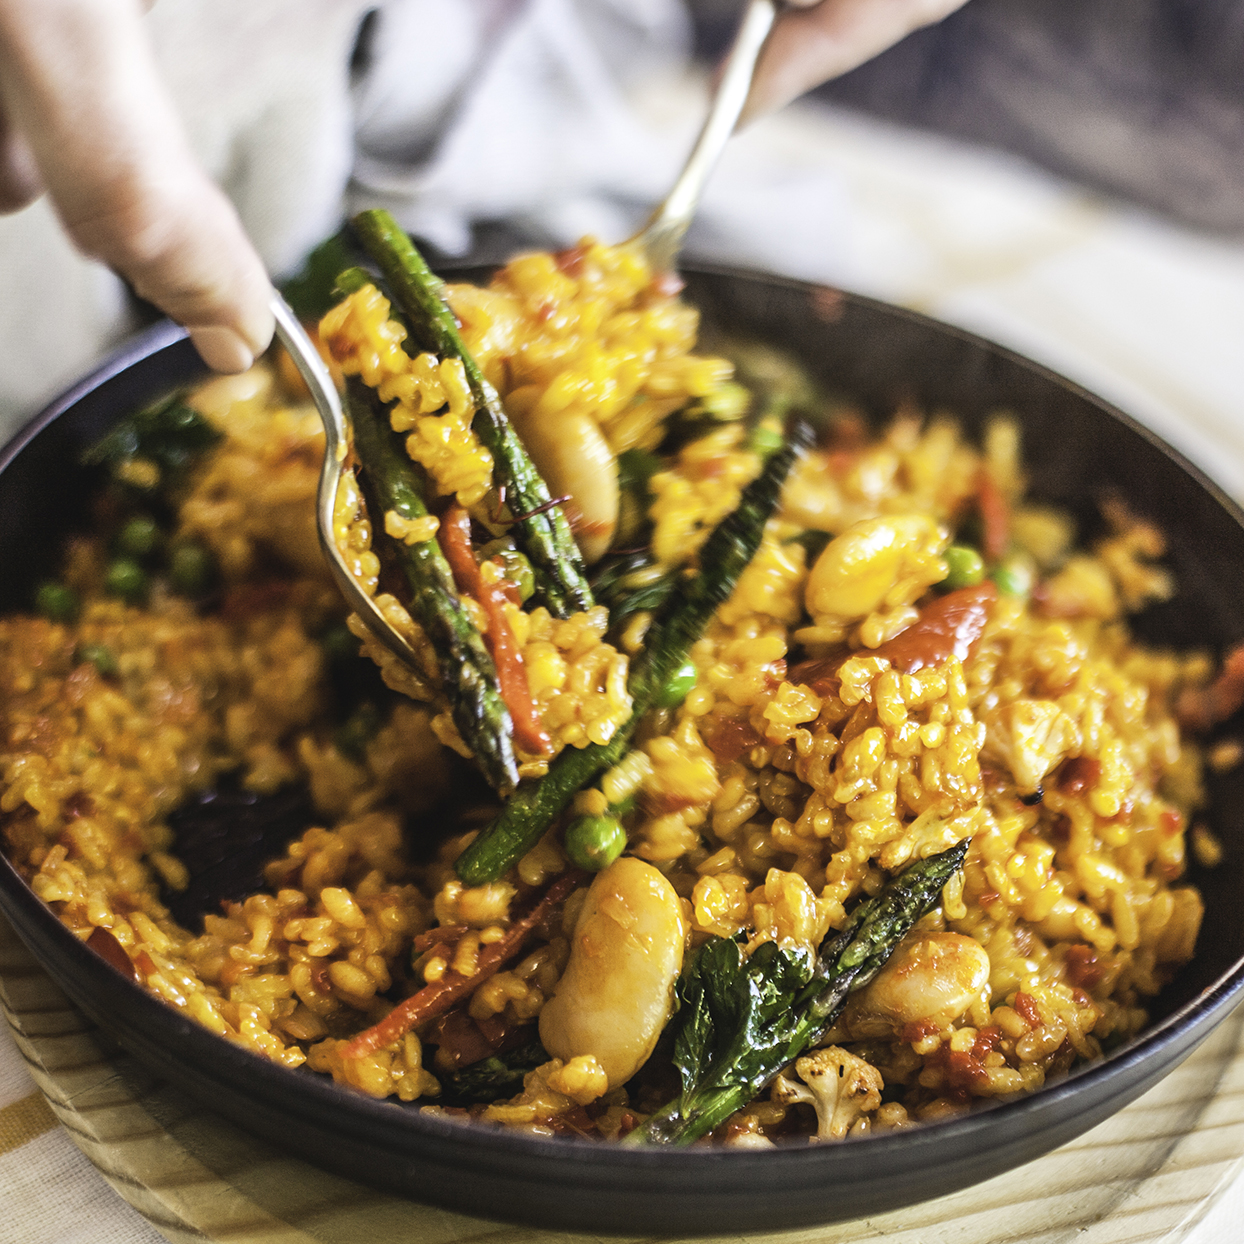 This delicious Spanish dish is full of rice, vegetables, and seafood. Its calorie count depends on how it is prepared. Many restaurants use a lot of oil in the cooking process, resulting in more than 500 calories per 1-cup serving. For a lighter version, try this brown rice paella recipe.